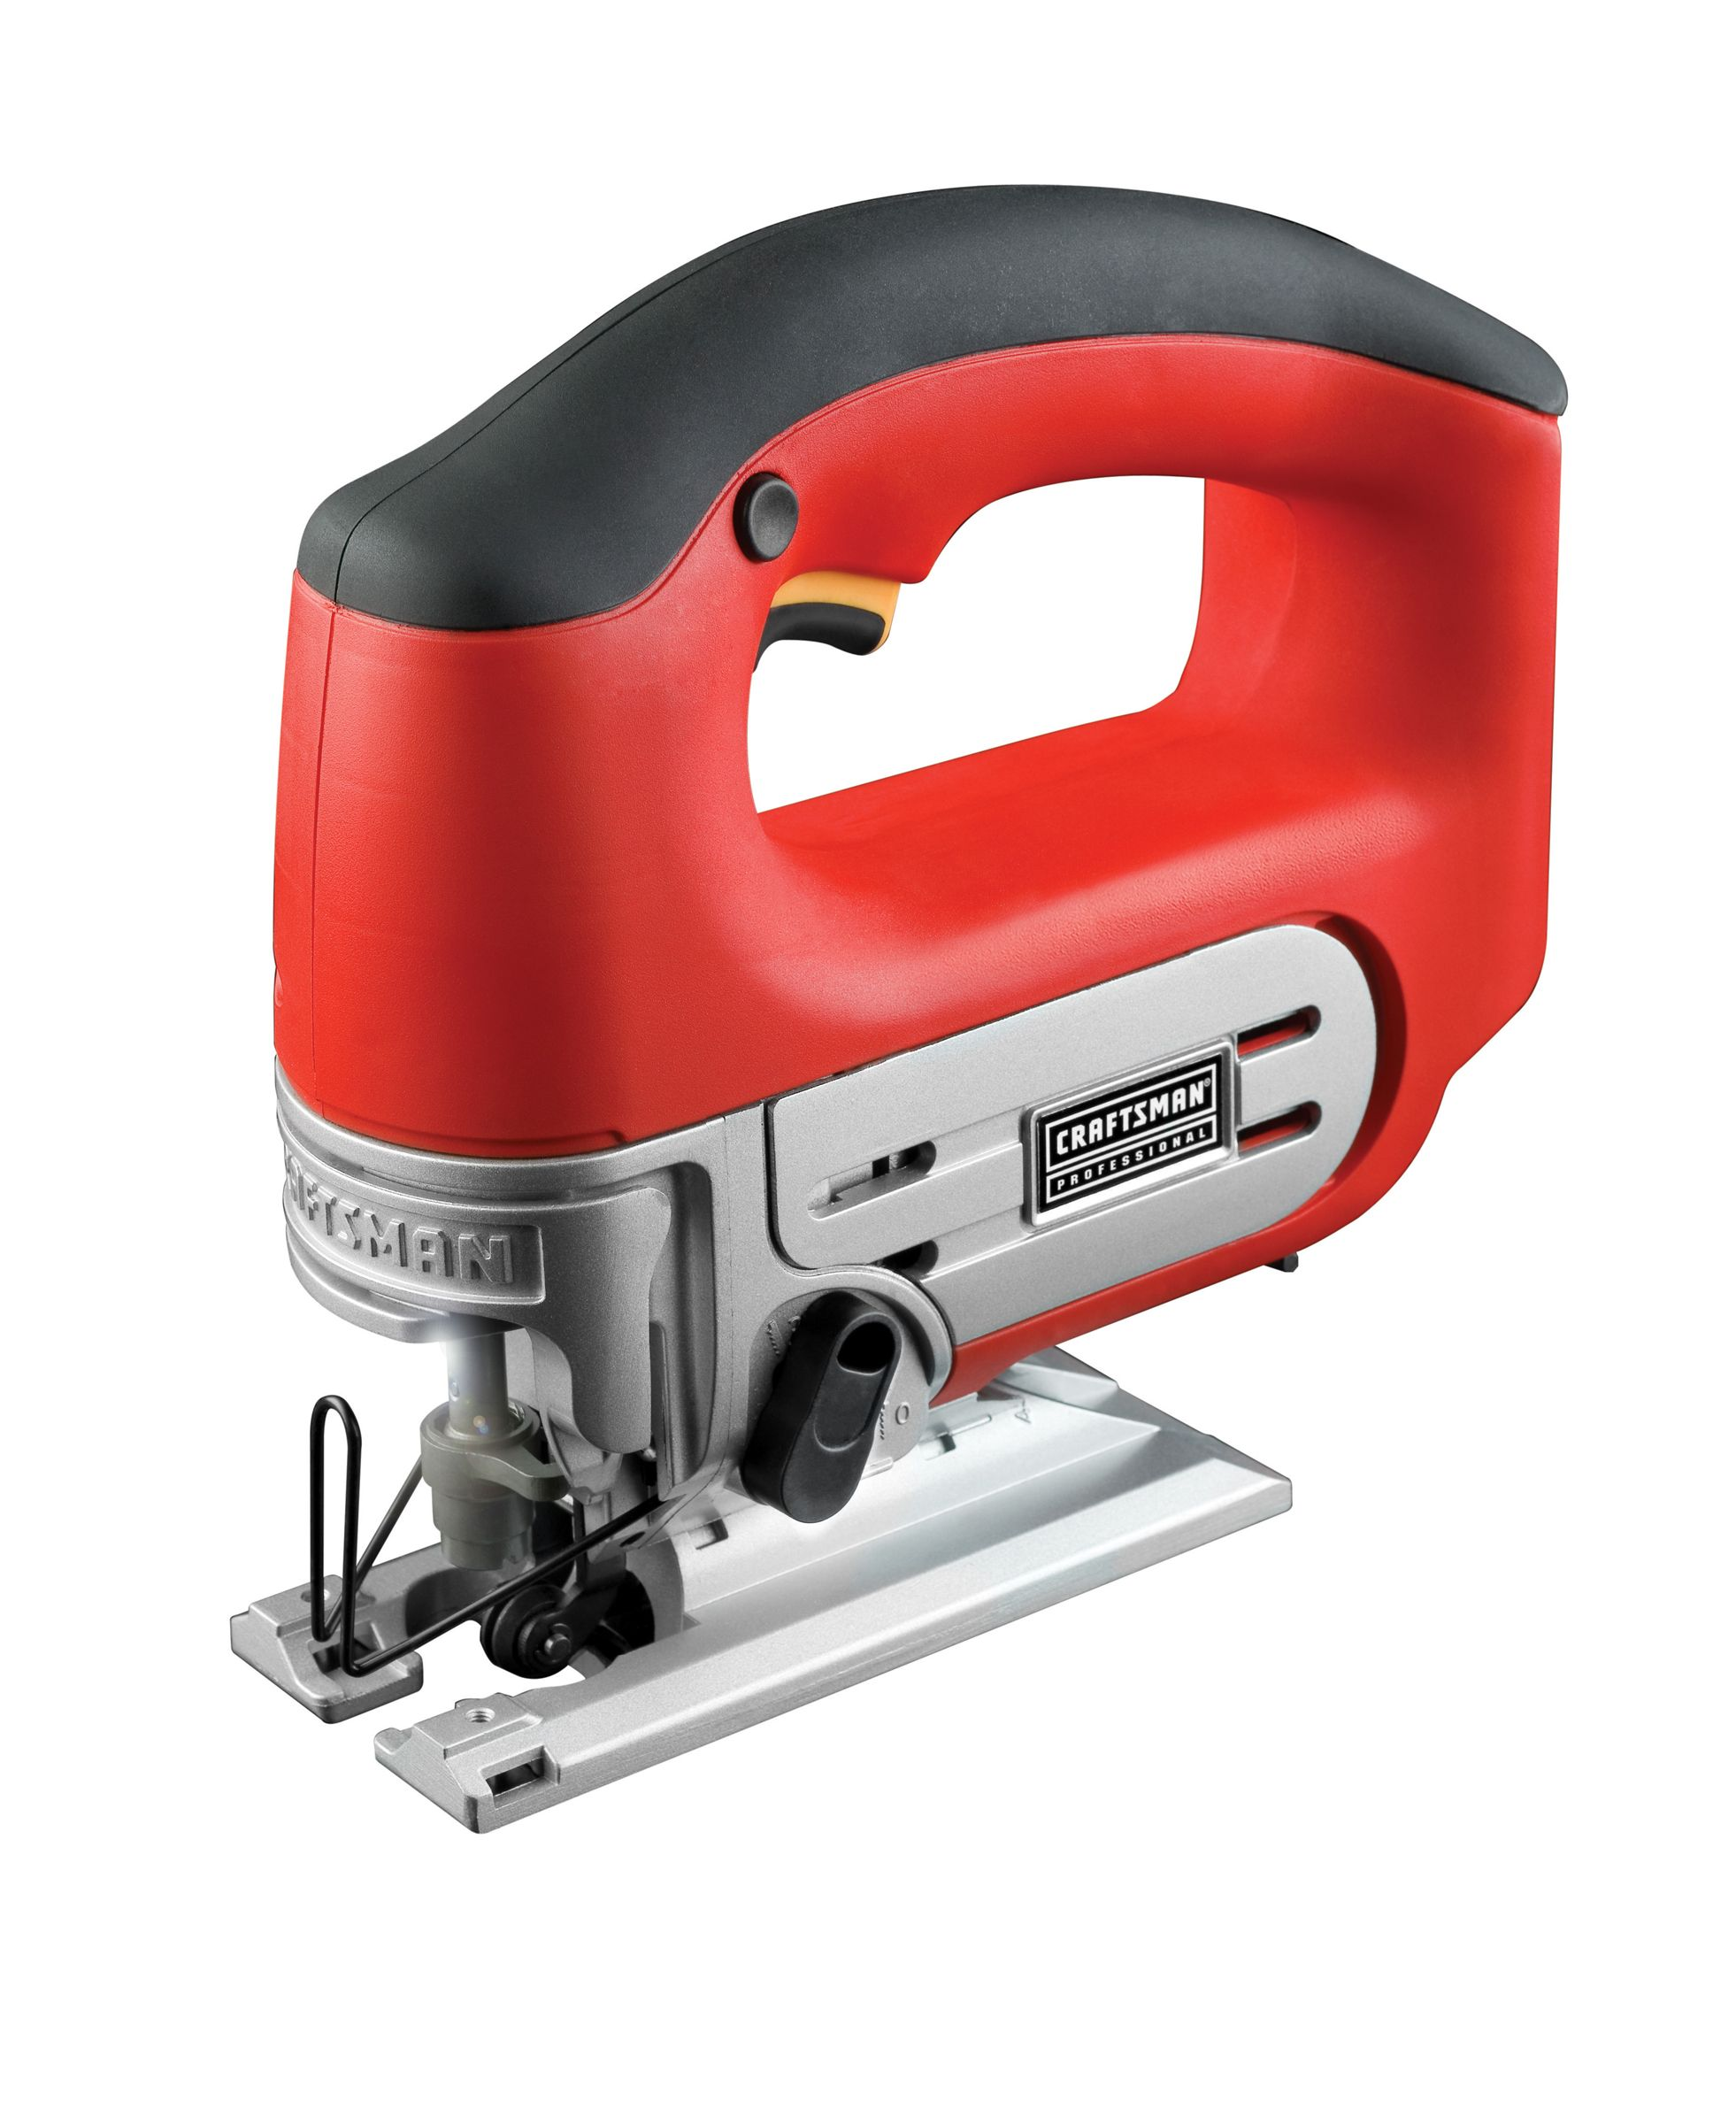 Craftsman Professional 28127 20-volt Lithium-ion Corded Variable Speed Orbital Sabre With